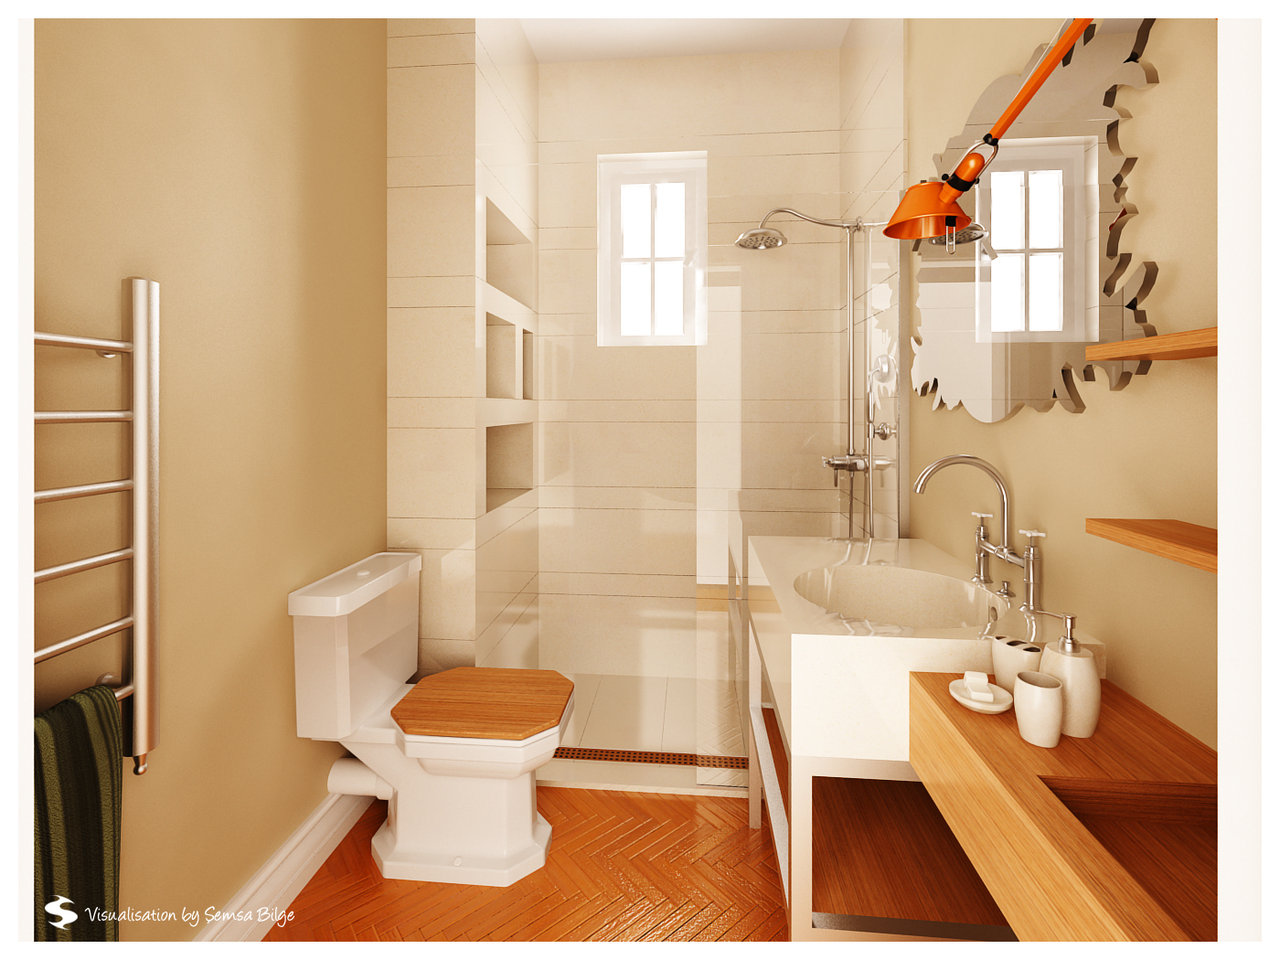 Outstanding Unique Small Bathroom Design 1280 x 960 · 201 kB · jpeg